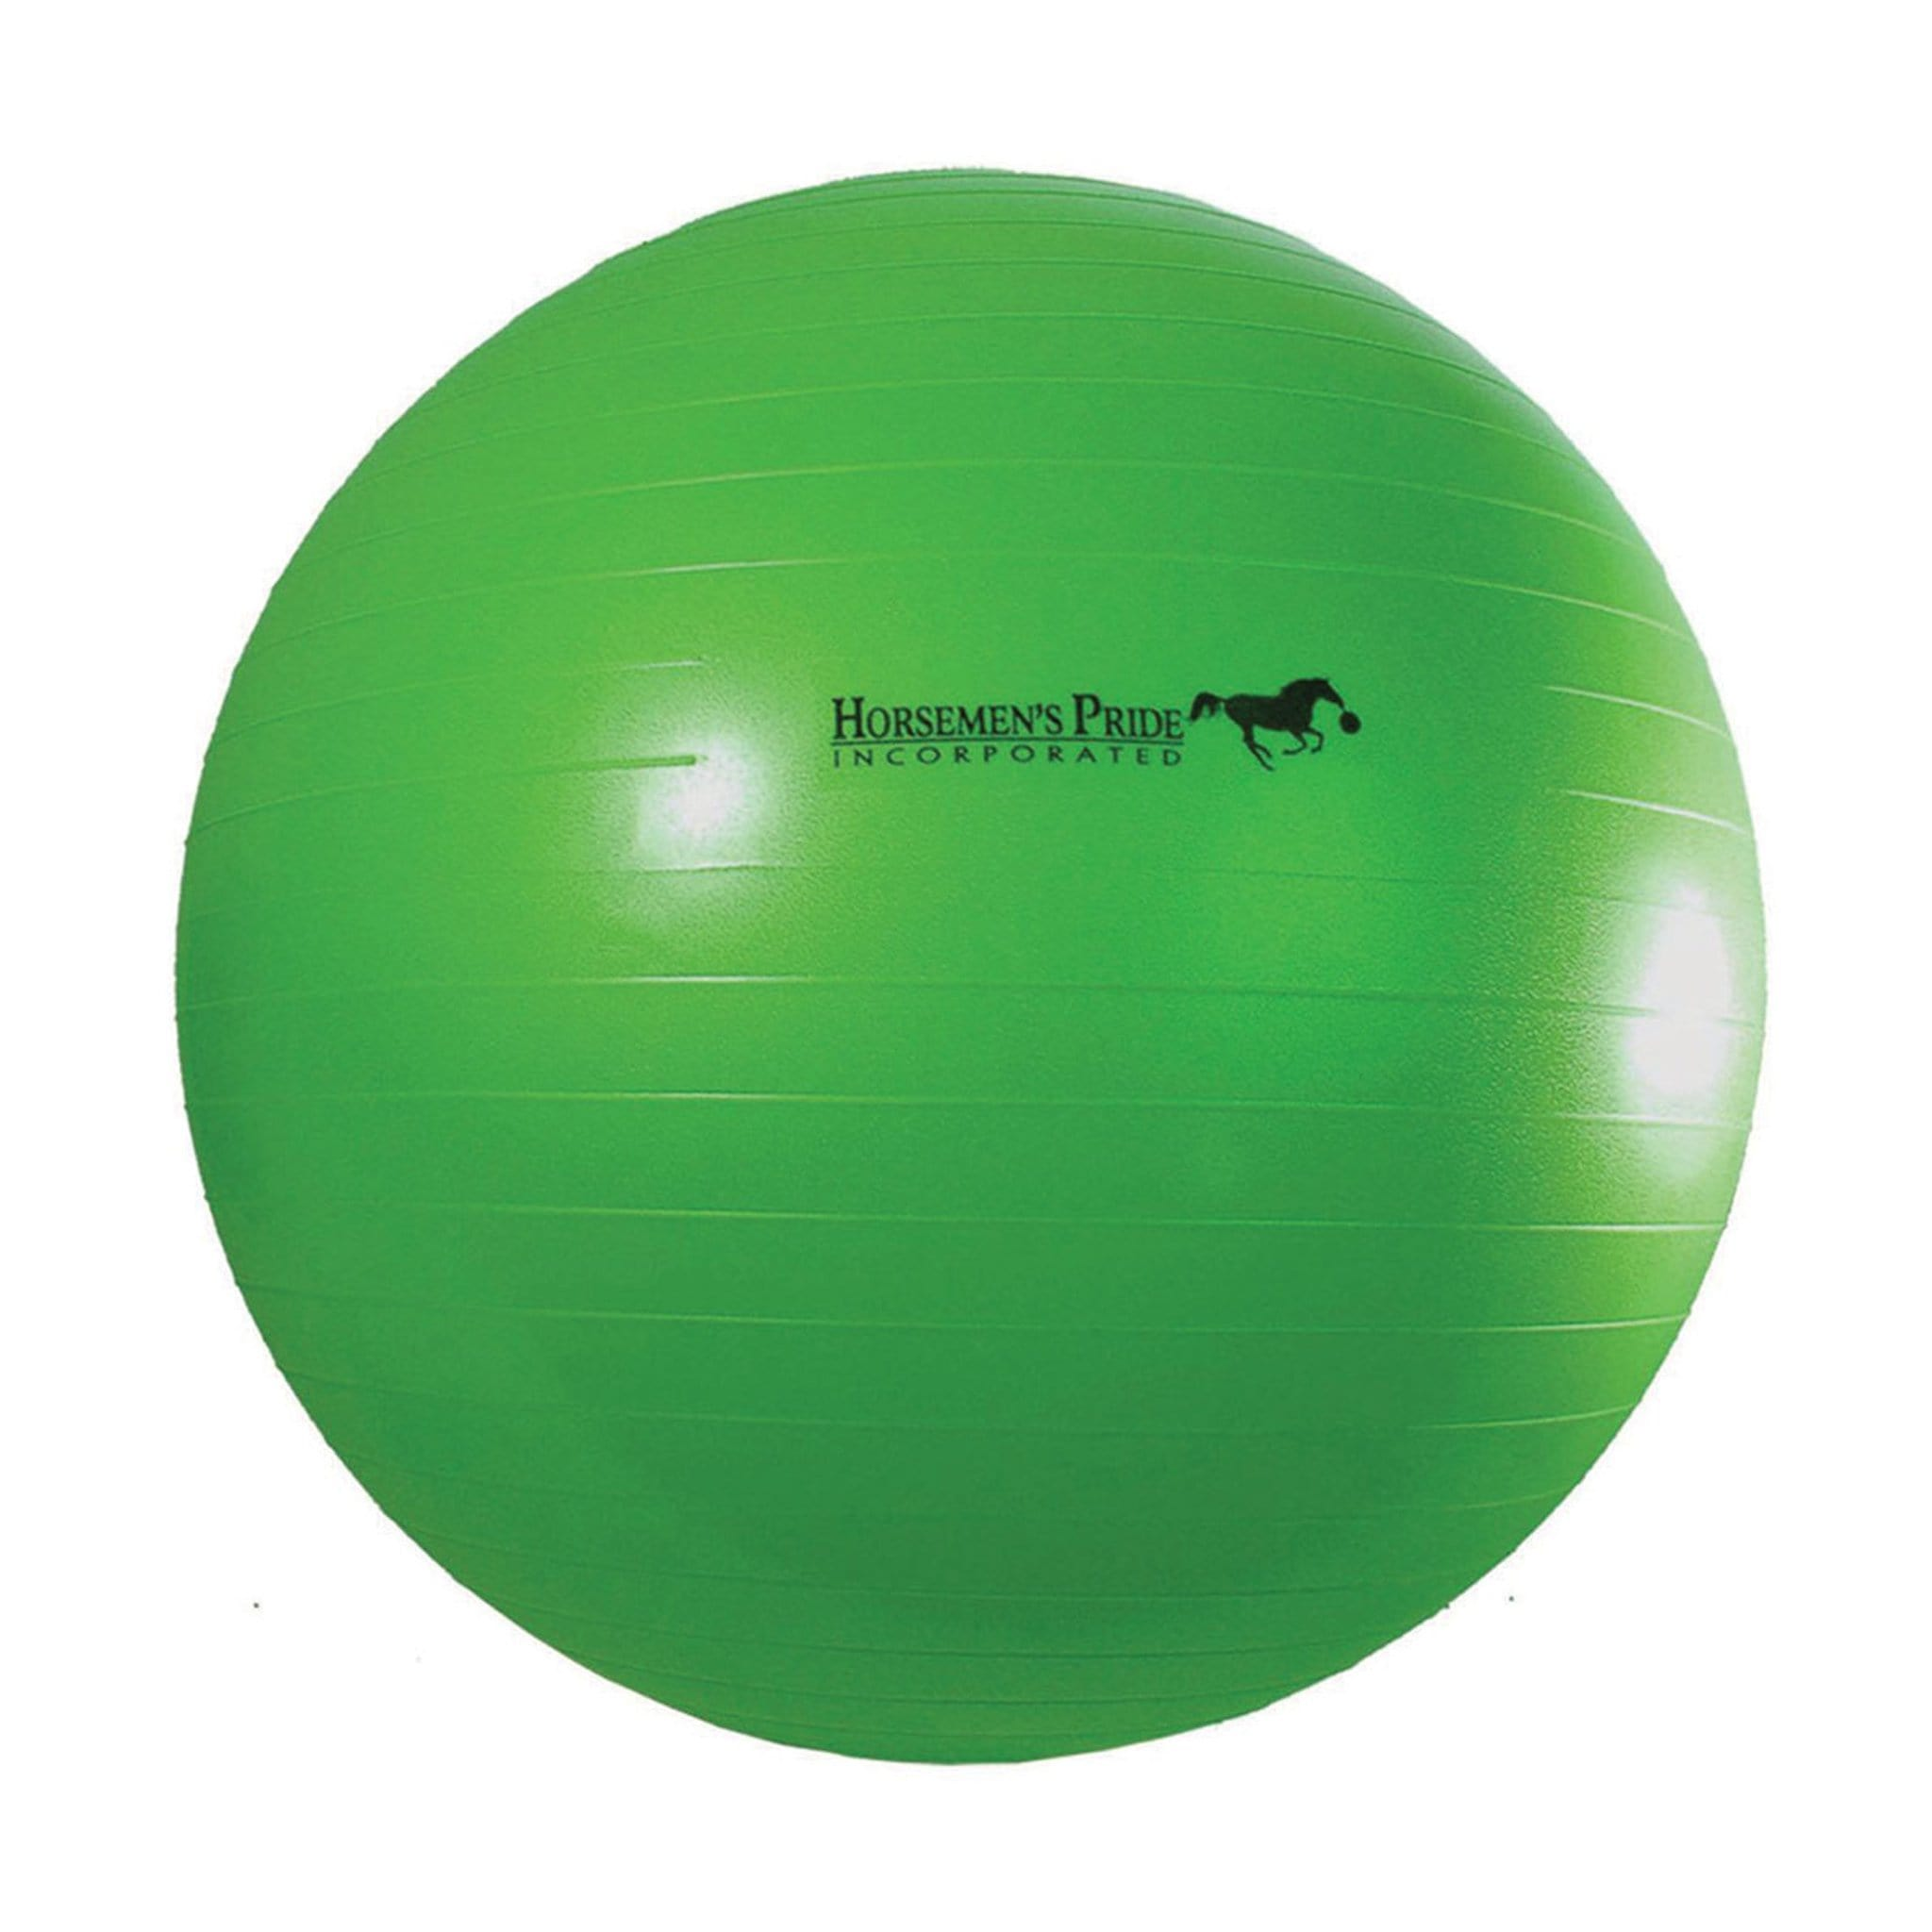 Horsemen's Pride Jolly Mega Ball in Green 7519